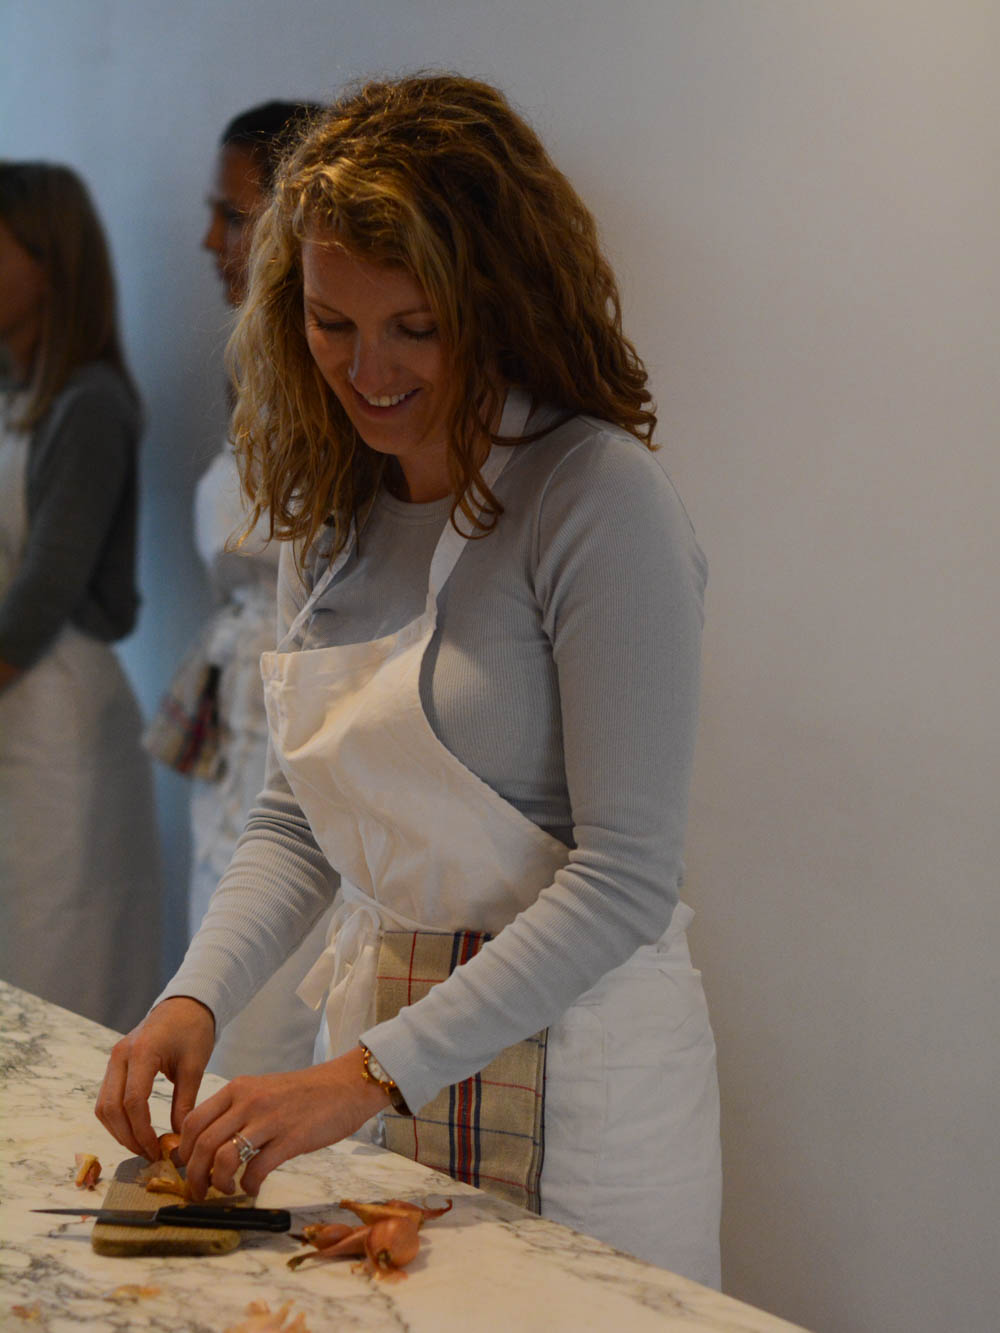 cooks-atelier-beaune-france-cooking-school.jpg